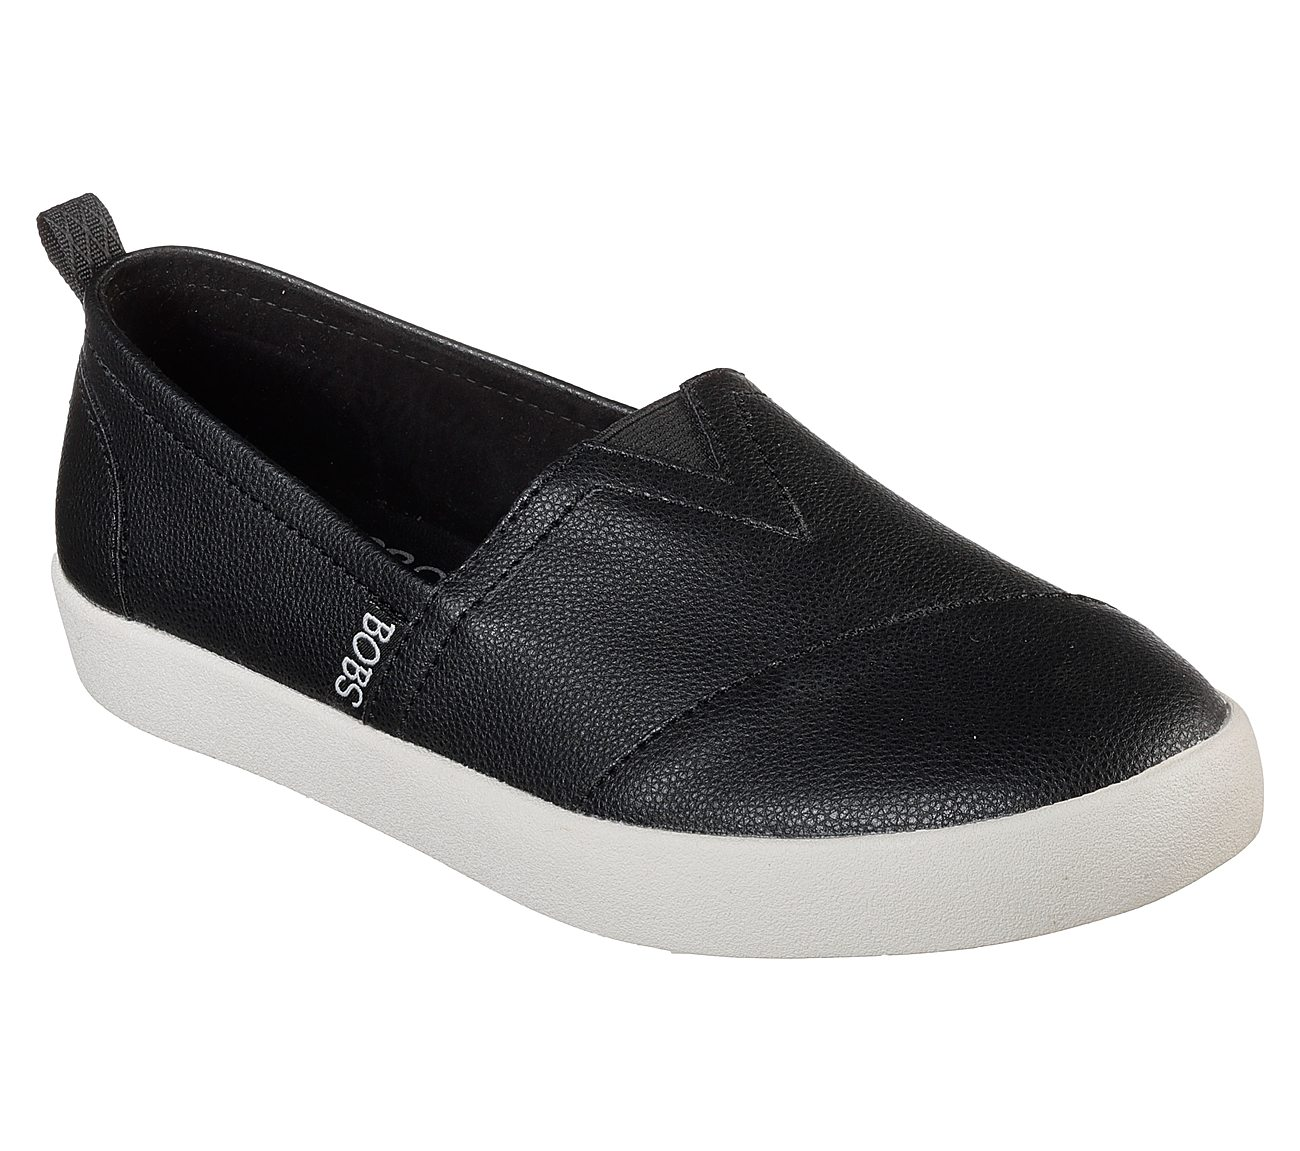 factory outlet cheap online Skechers BOBS B-Loved Women's ... Sneakers outlet limited edition sale classic clearance official site qyRlzvFk